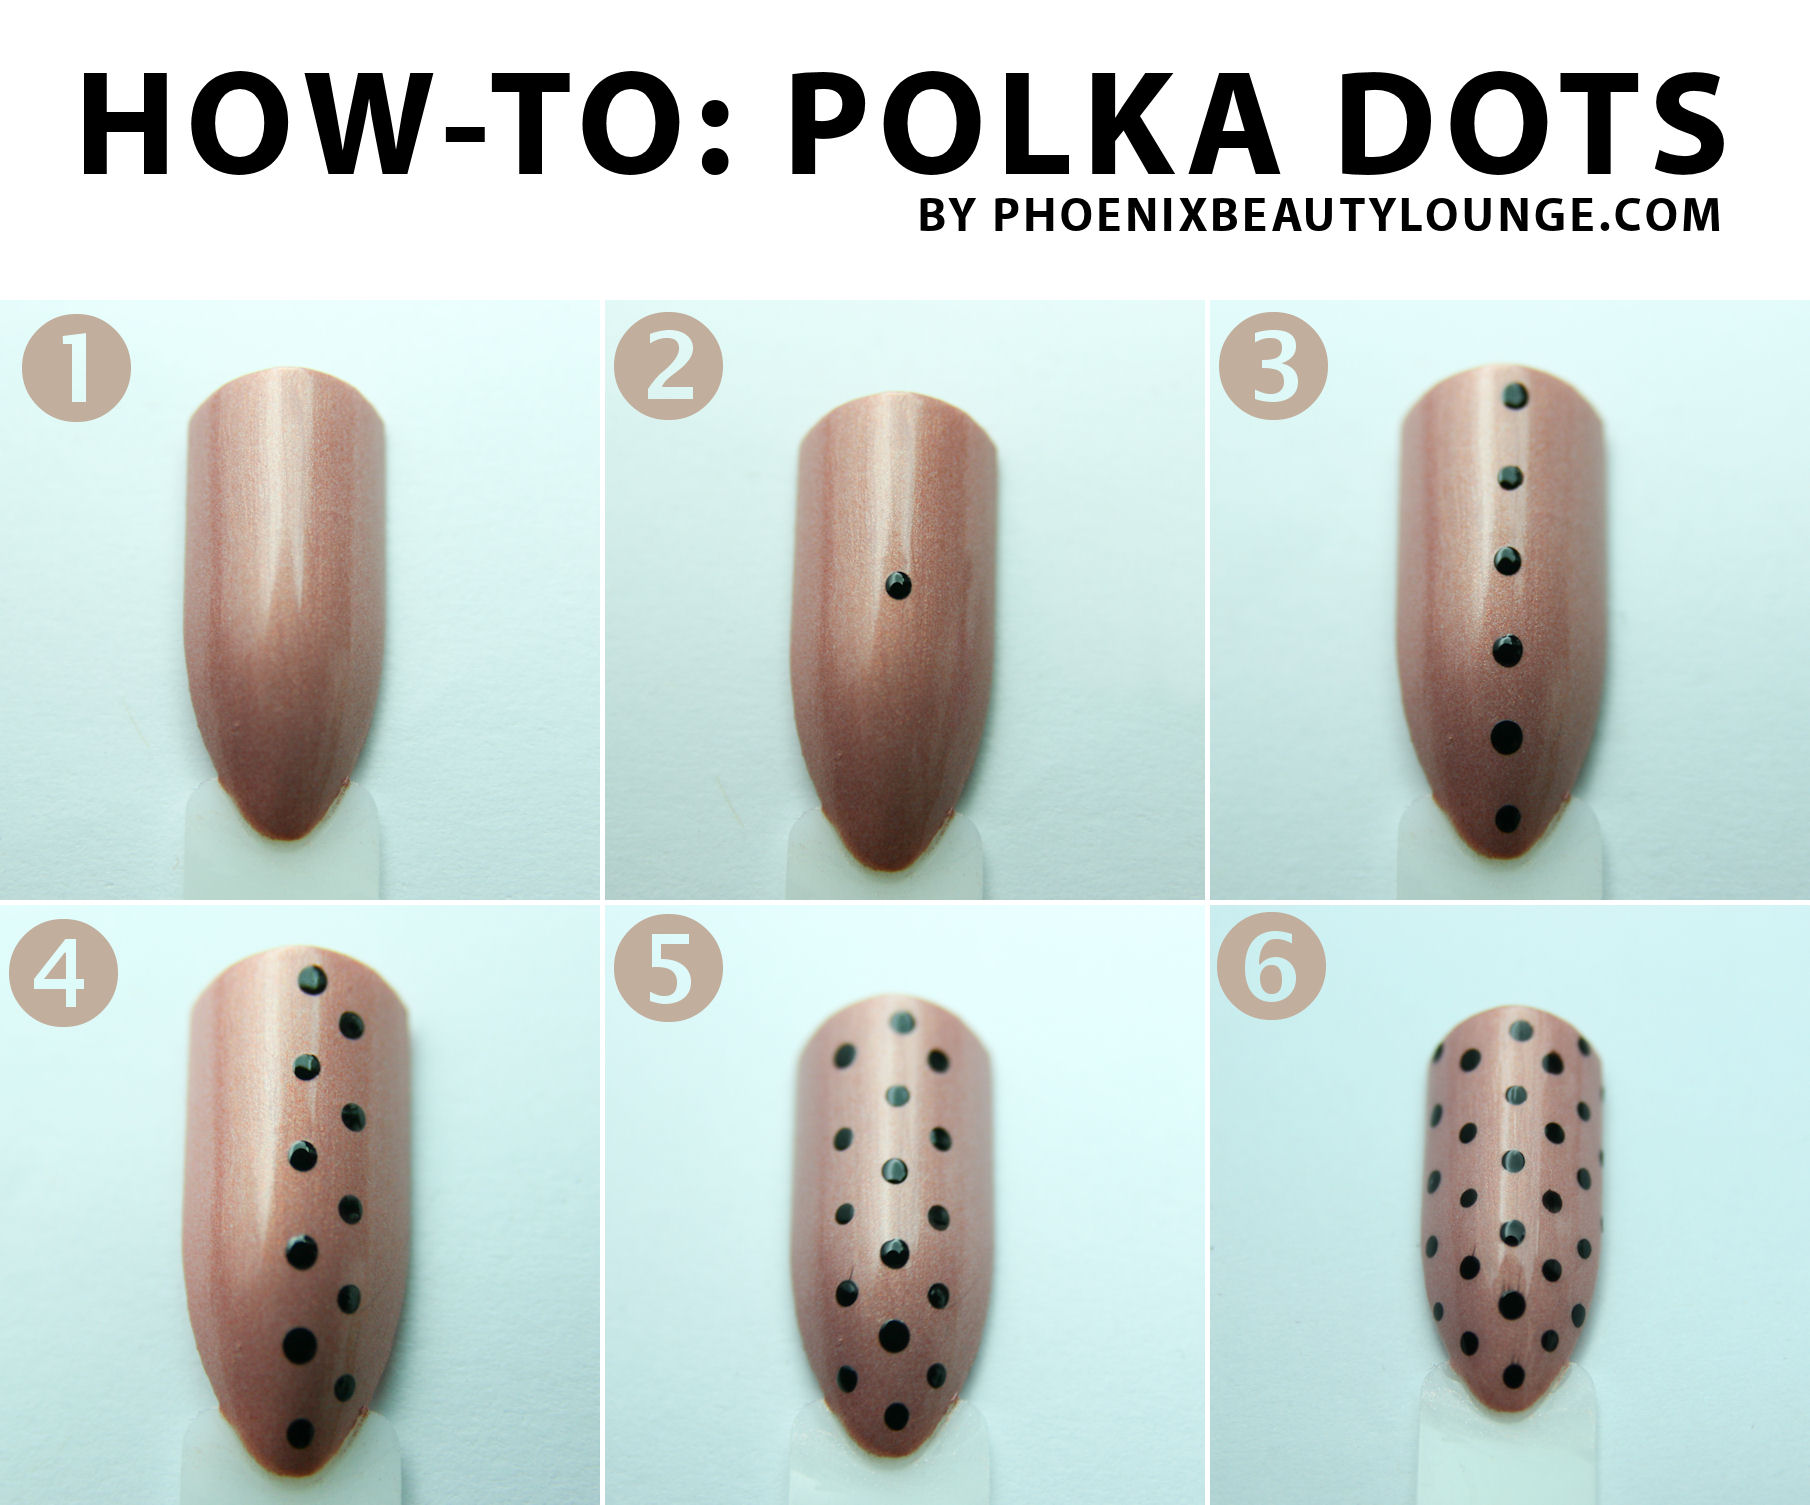 how-to_polkadots